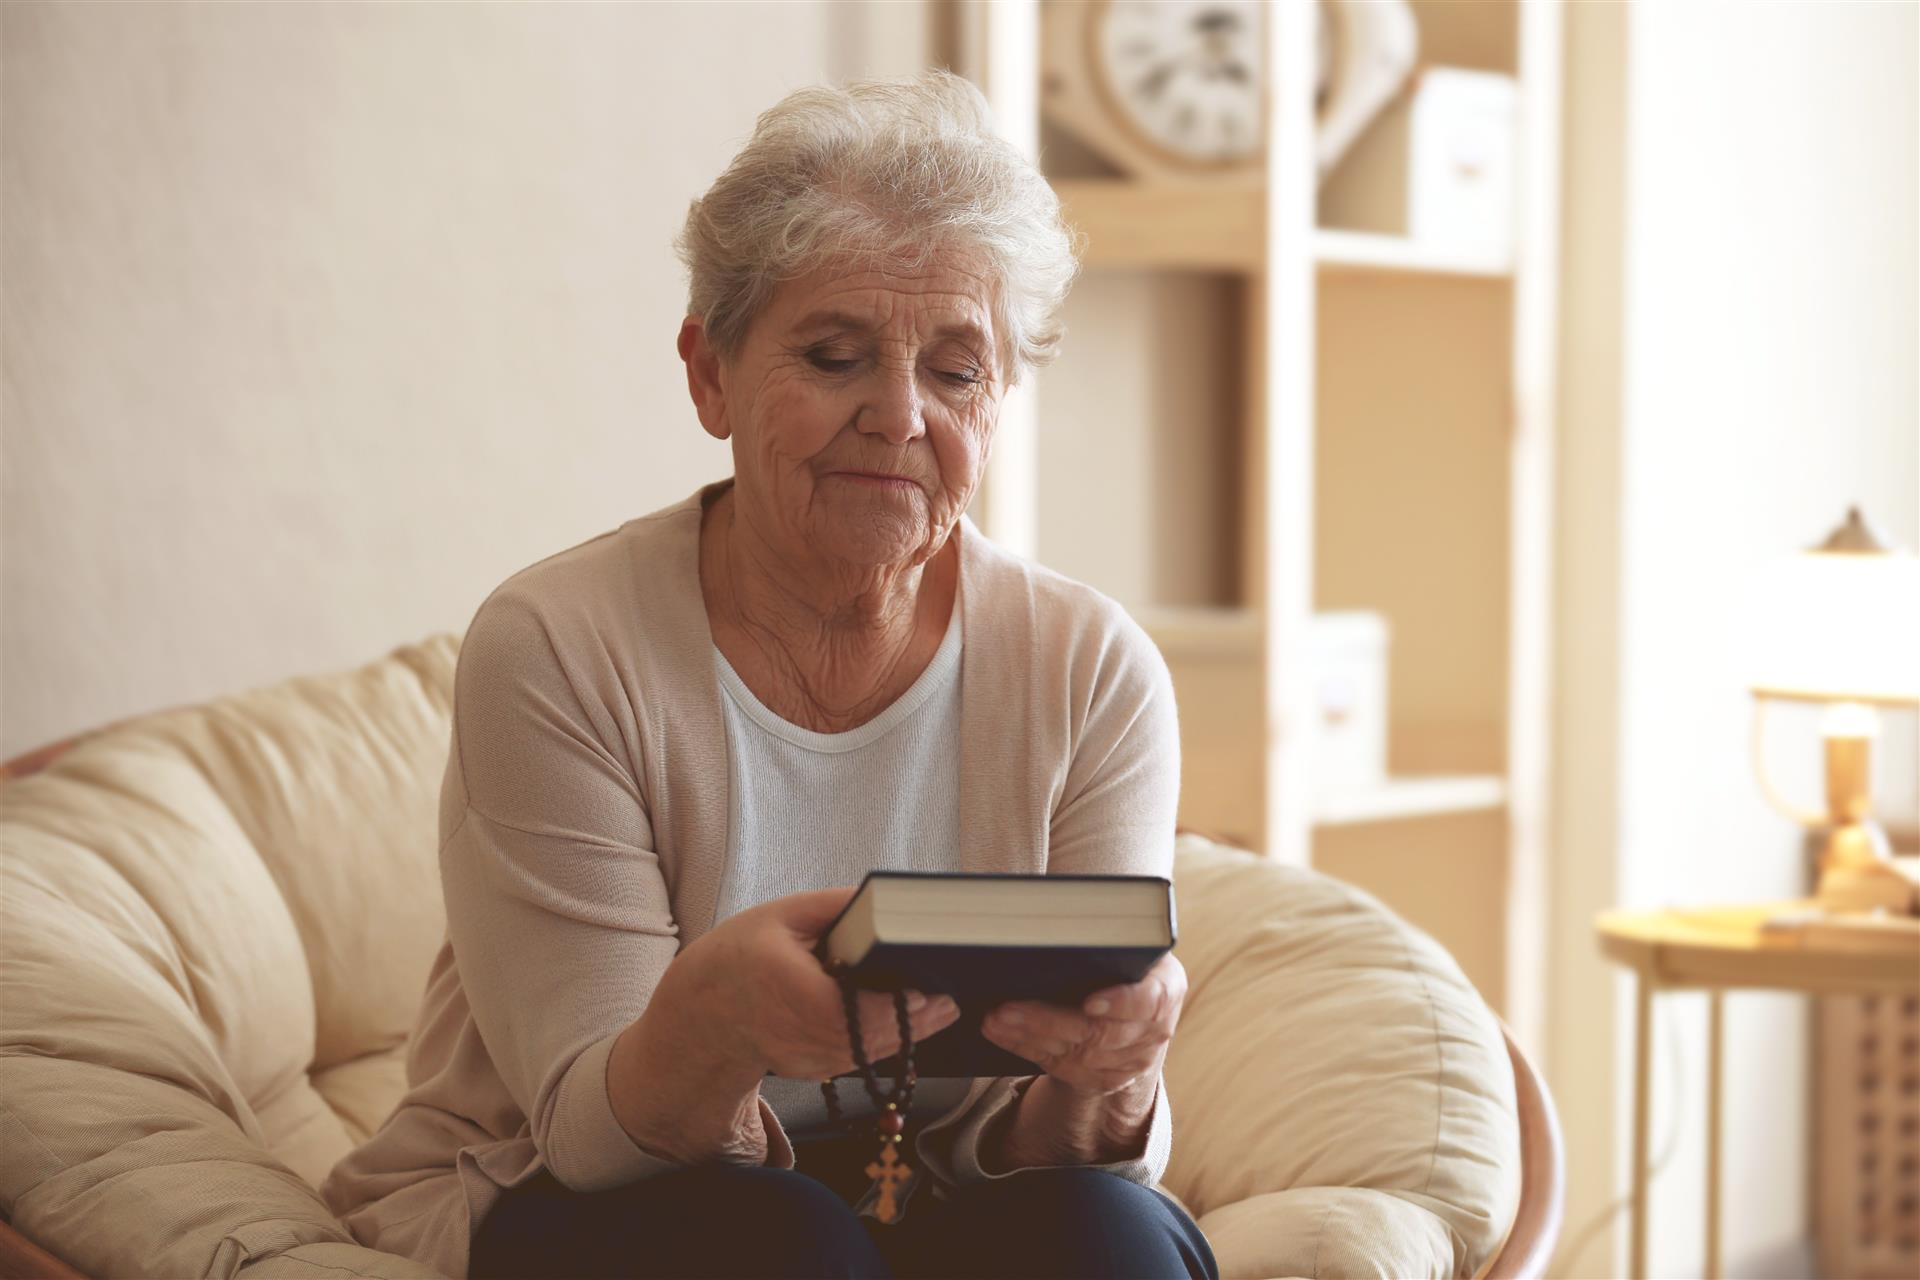 7 Bible Passages to Turn to in Your Assisted Living Apartment